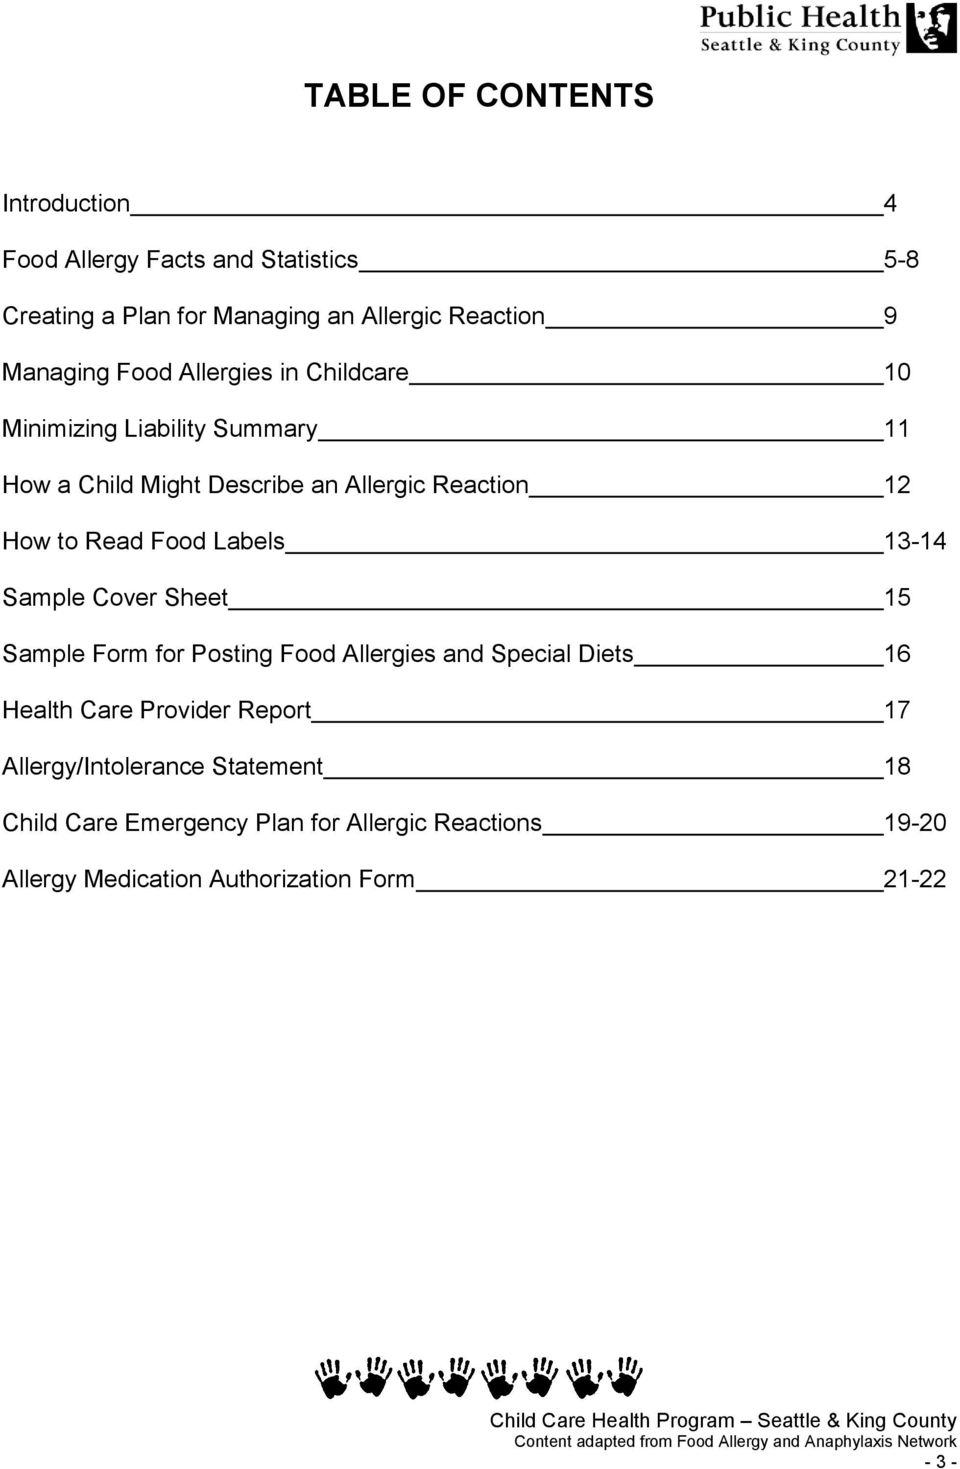 Labels 13-14 Sample Cover Sheet 15 Sample Form for Posting Food Allergies and Special Diets 16 Health Care Provider Report 17